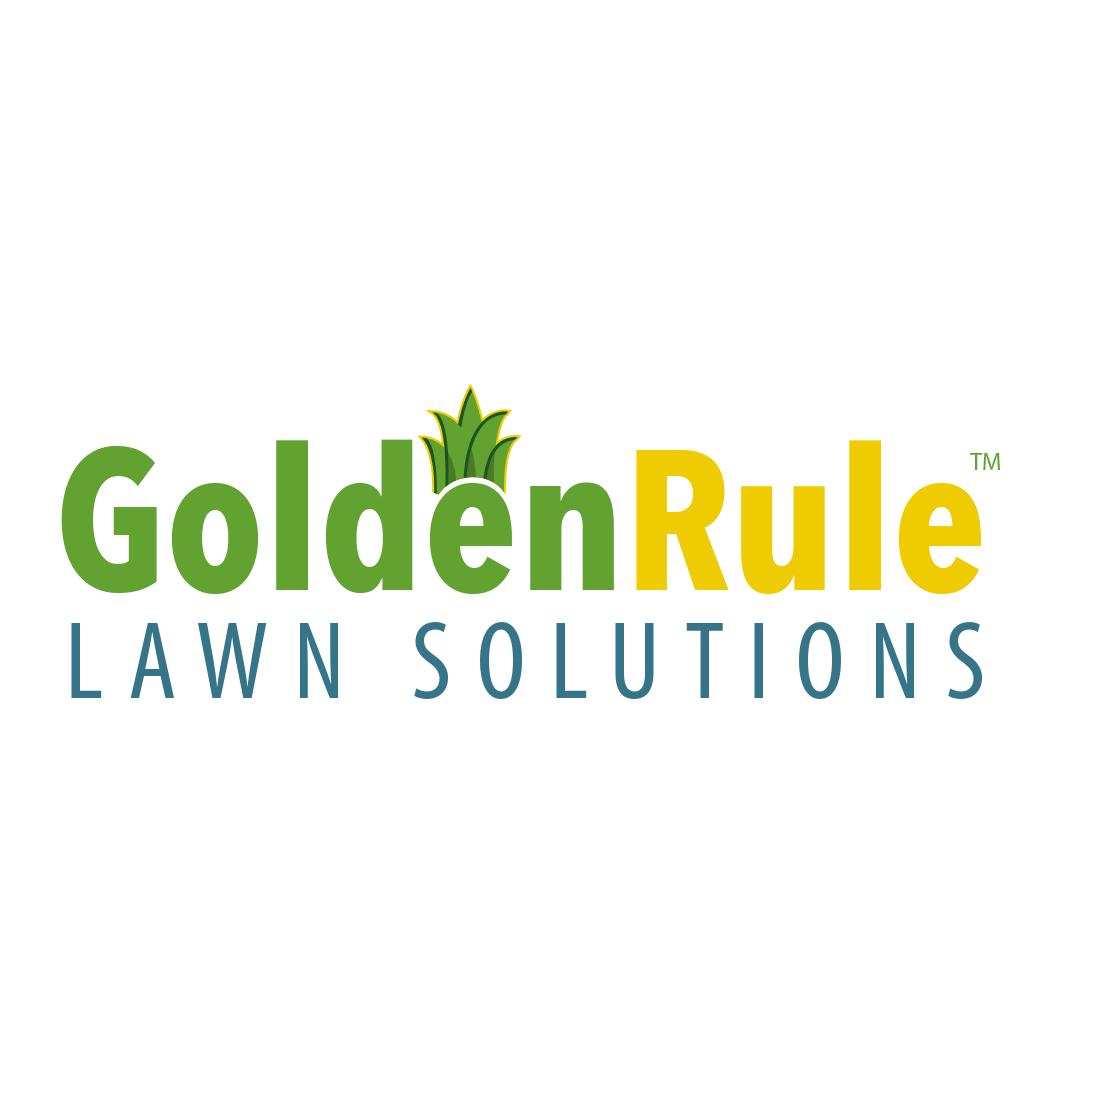 GoldenRule Lawn Solutions - ad image